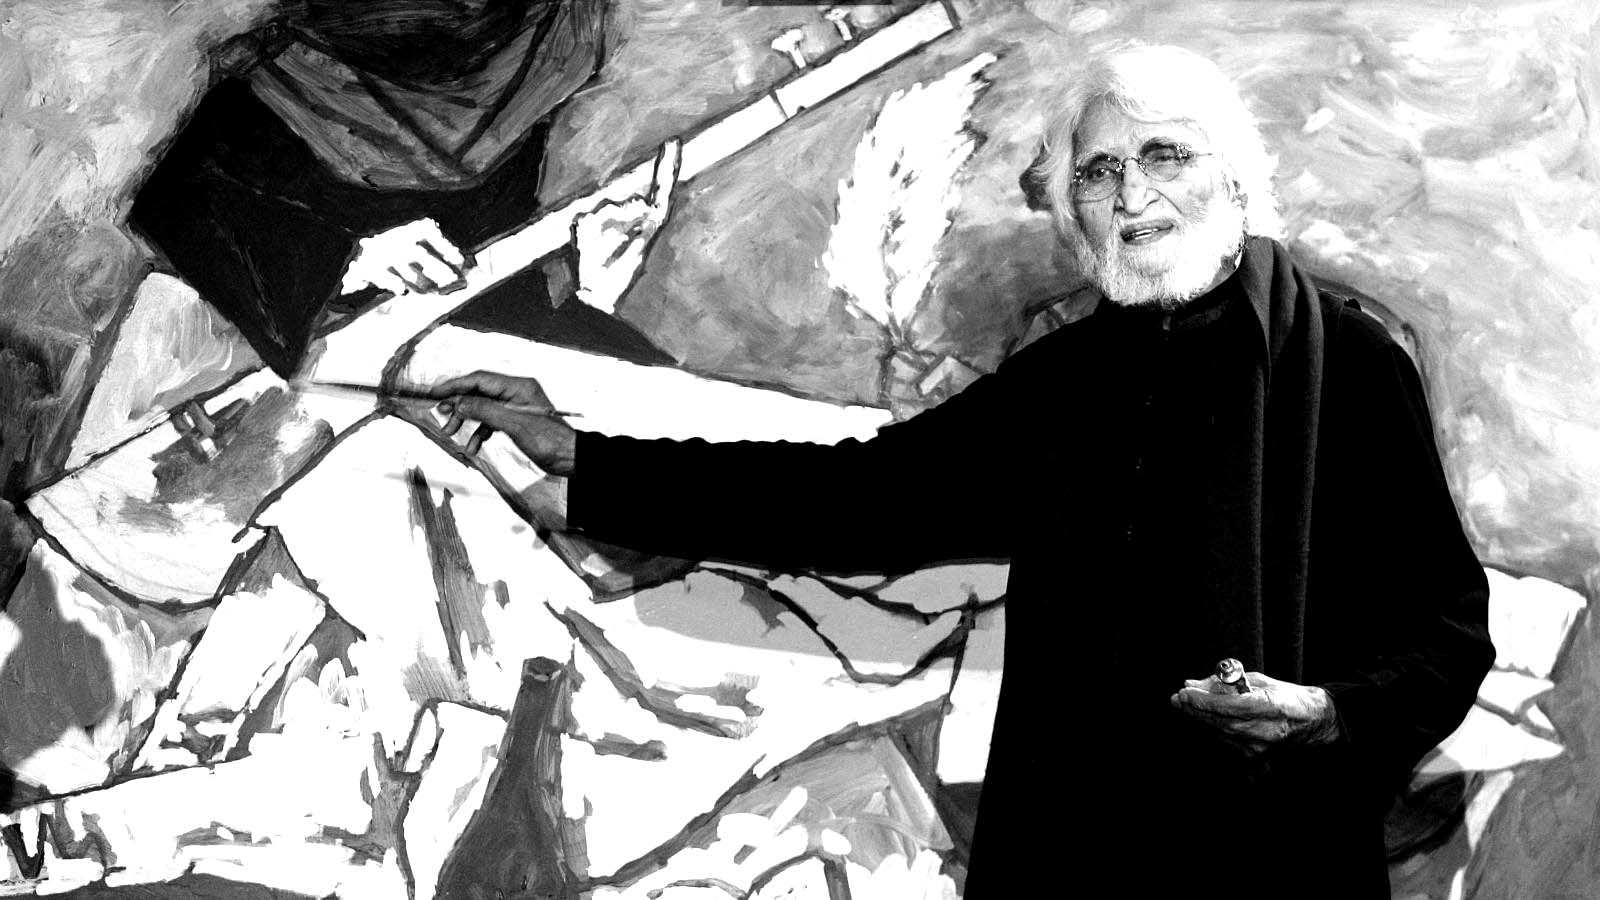 M.F. Husain: An Iconoclastic Icon